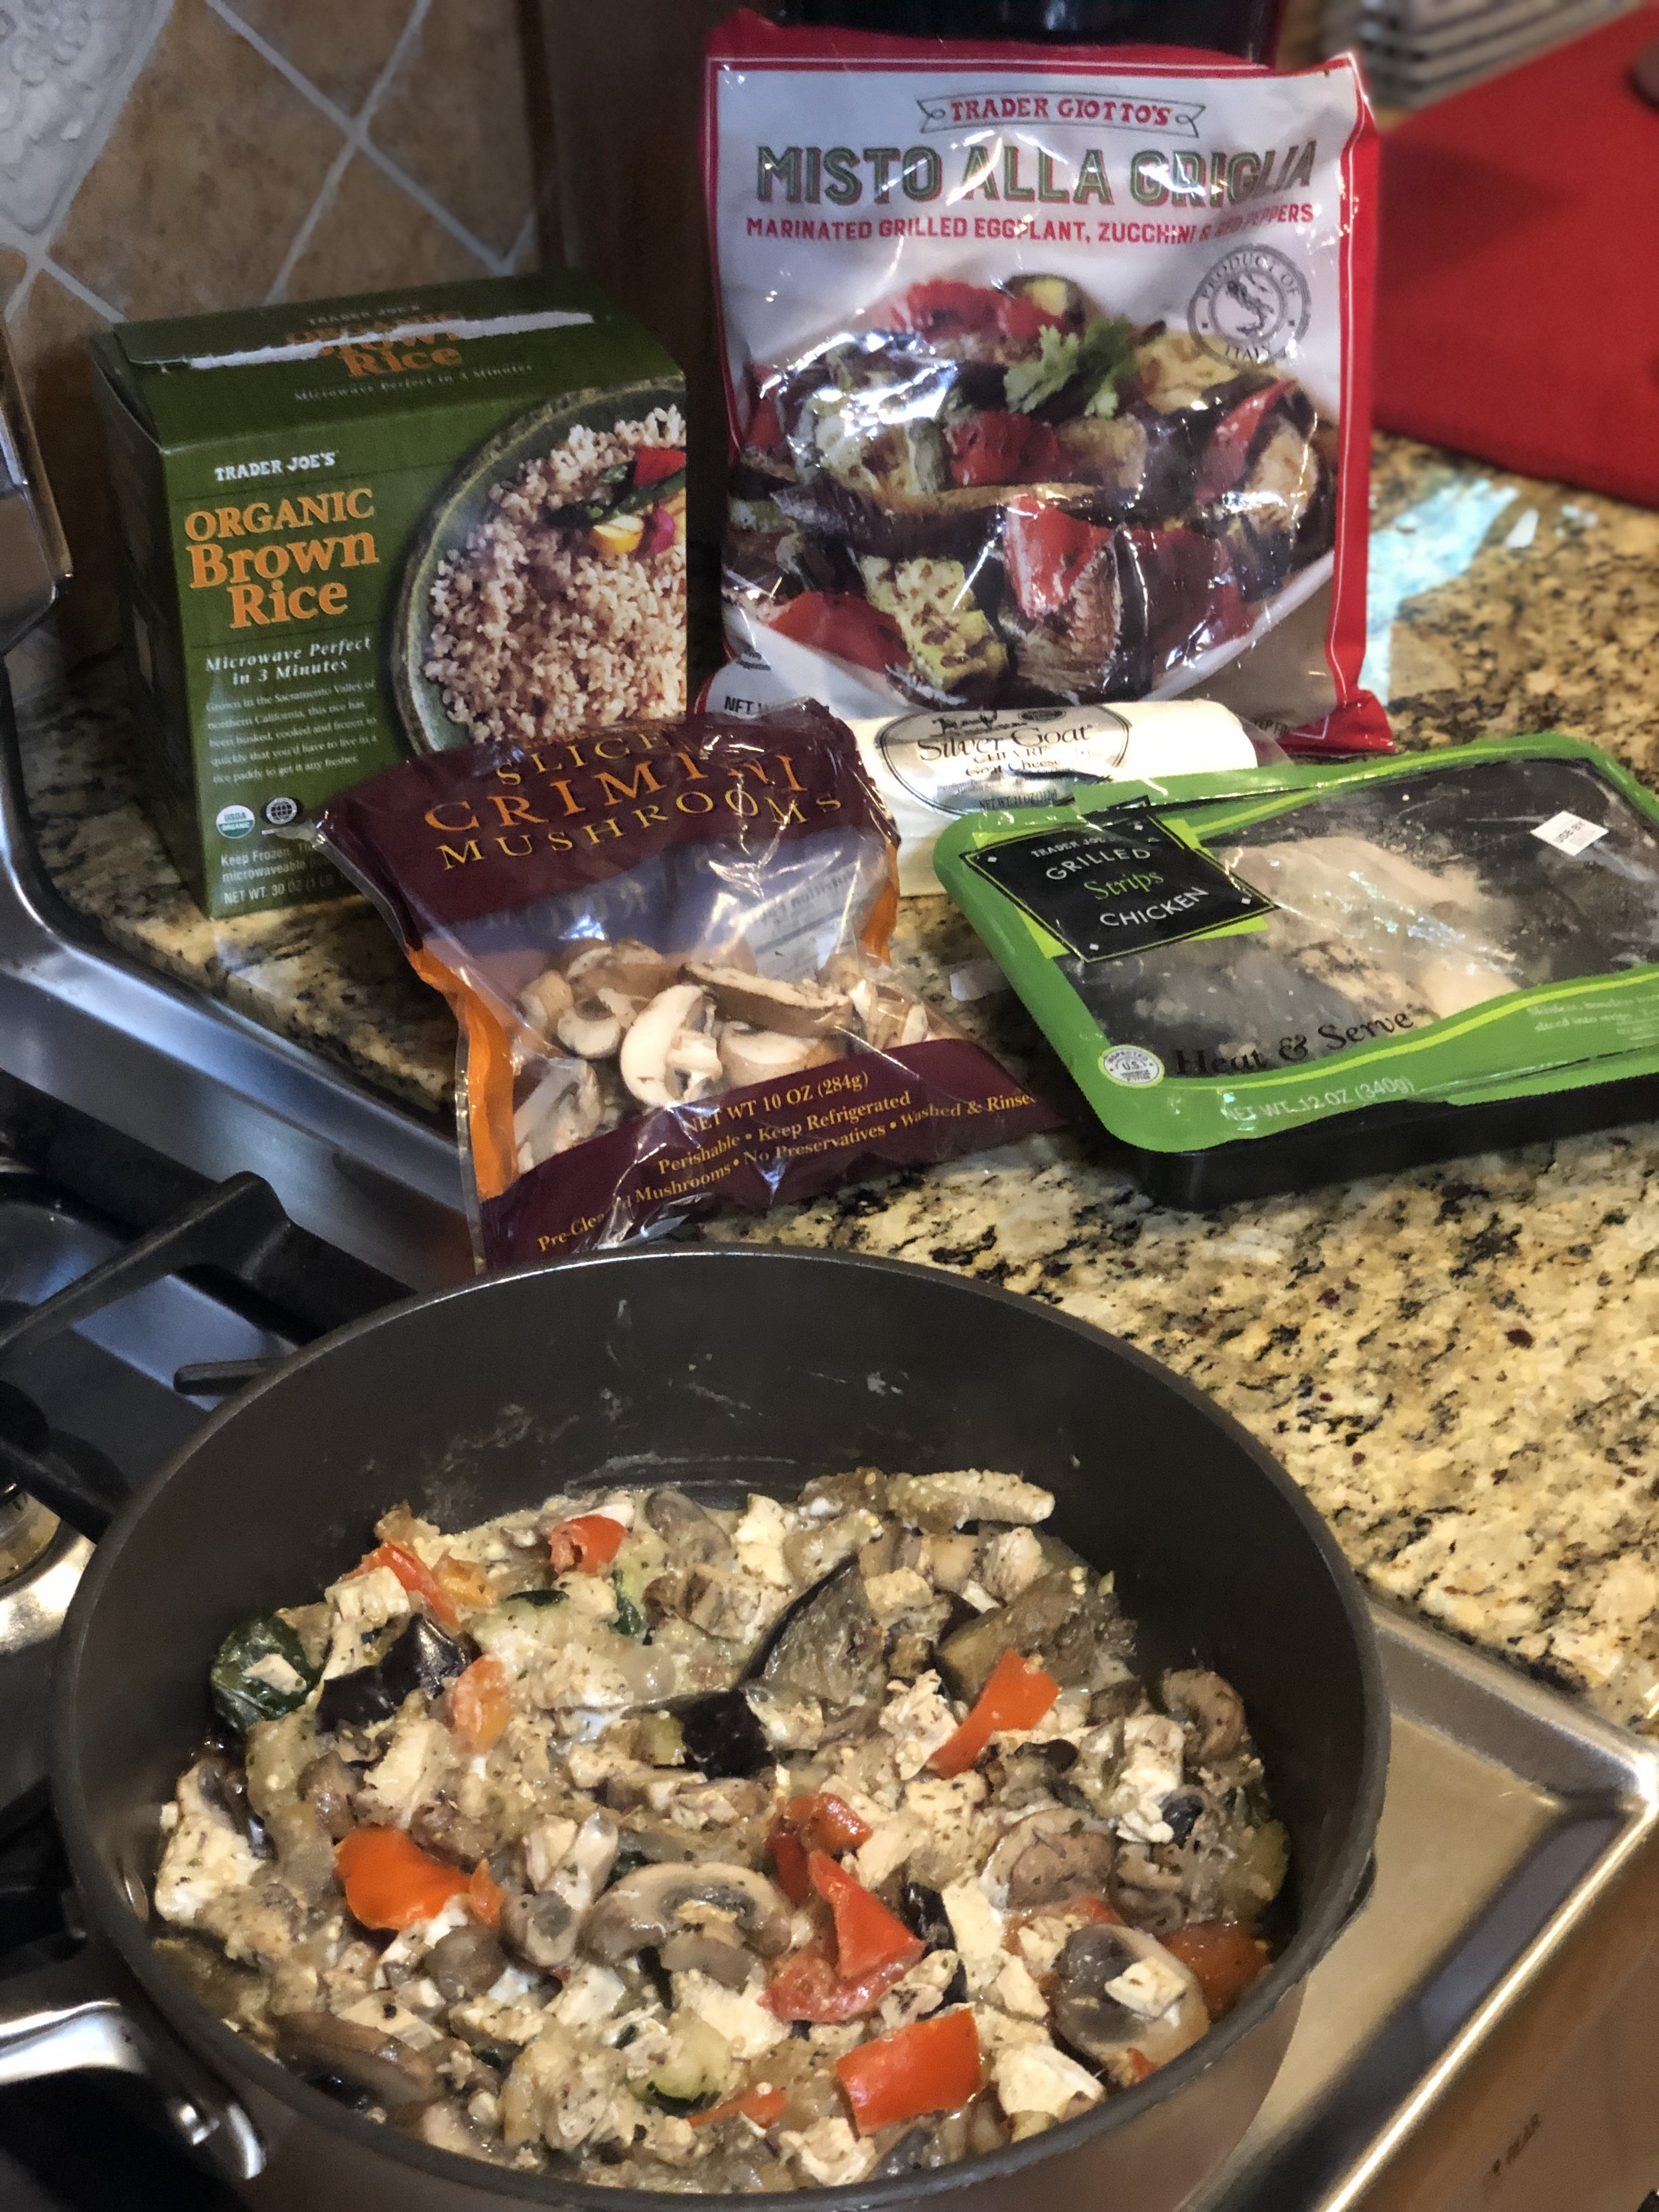 Healthy Eating at Trader Joes | Creamy Chicken and Vegetable Stir-Fry | Cook Ingredients